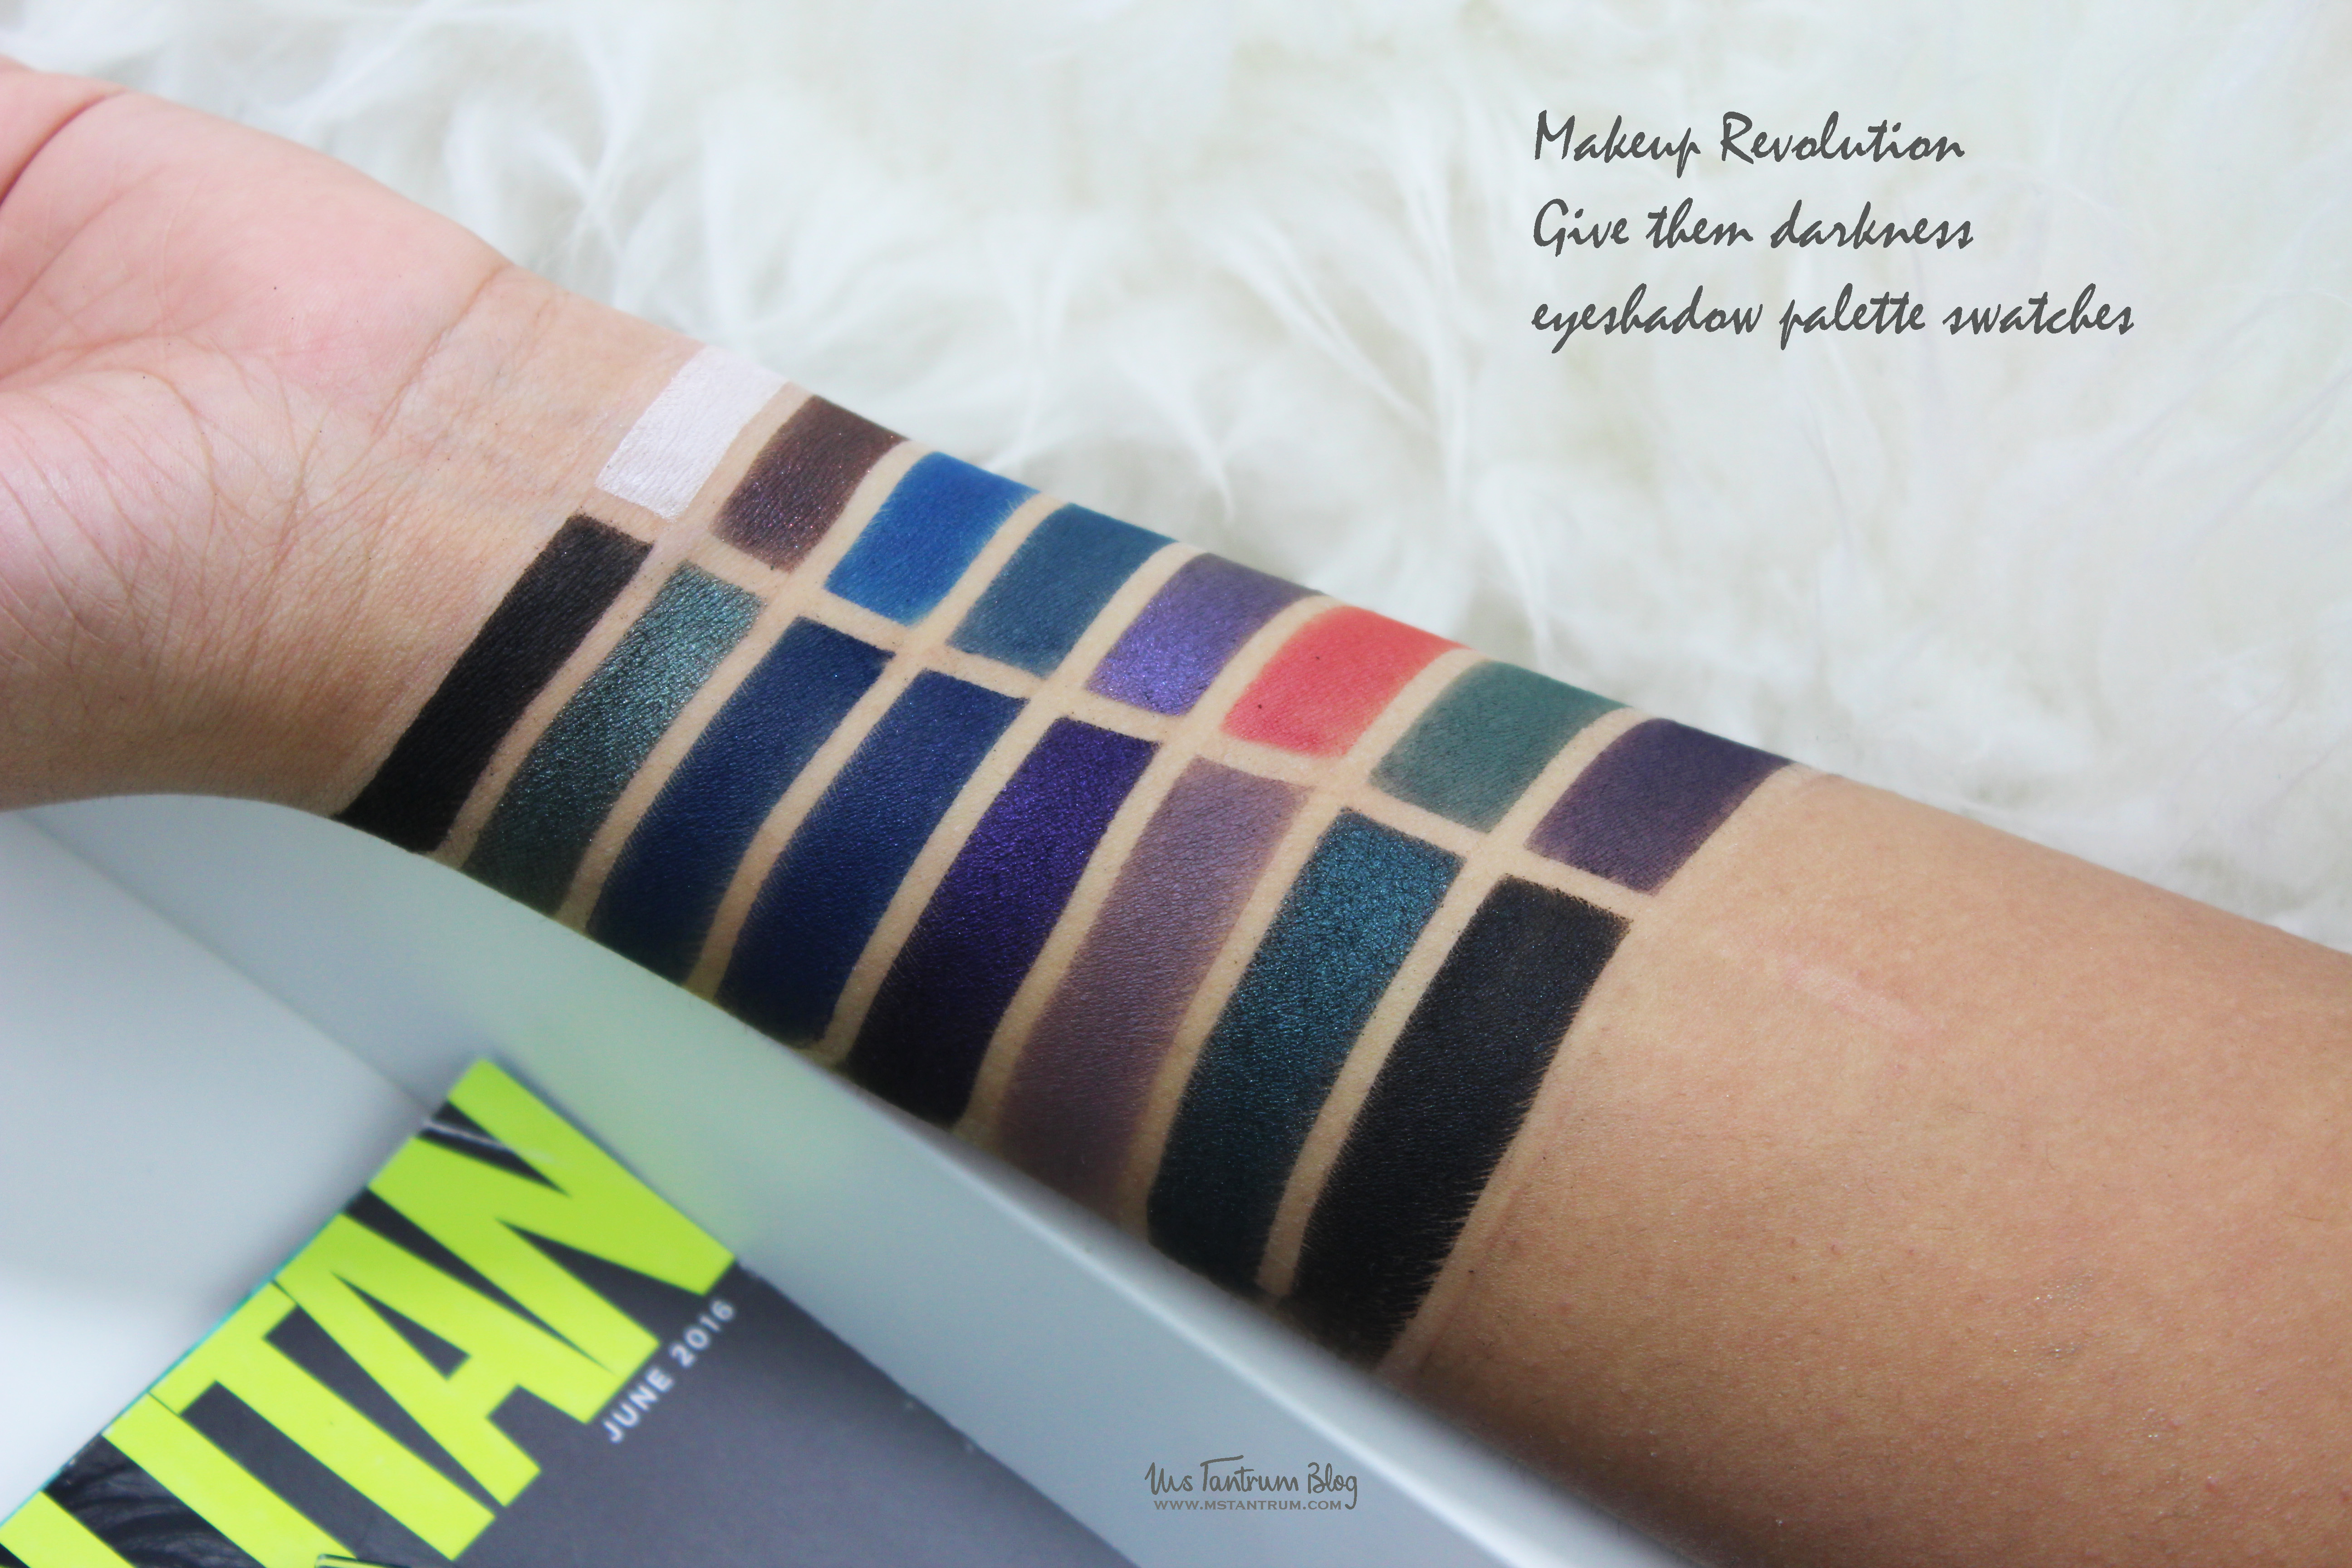 Makeup Revolution - Give them Darkness Eyeshadow Palette